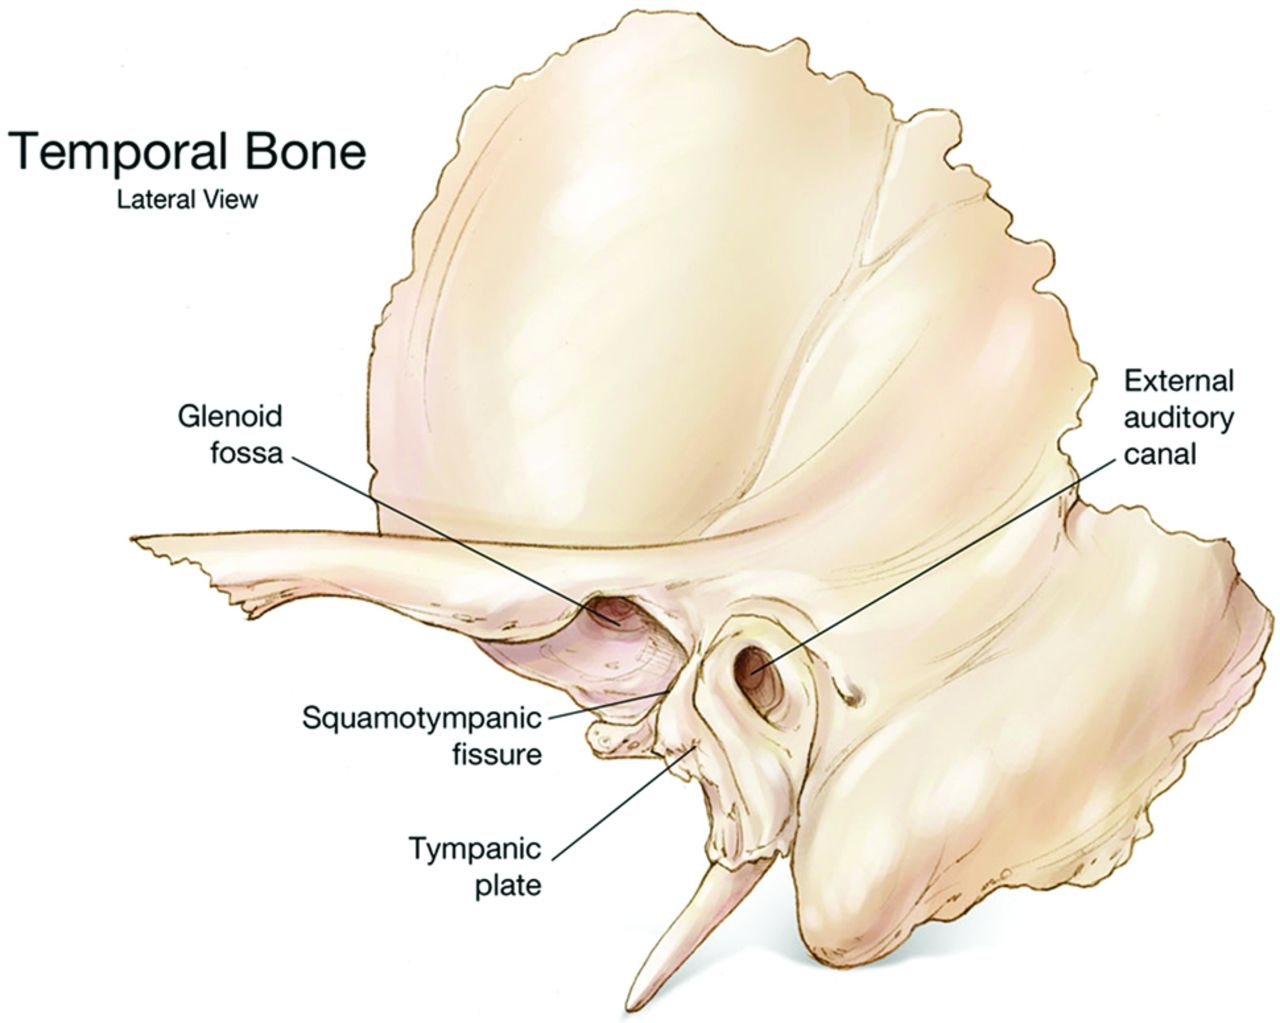 Tympanic Plate Fractures In Temporal Bone Trauma Prevalence And